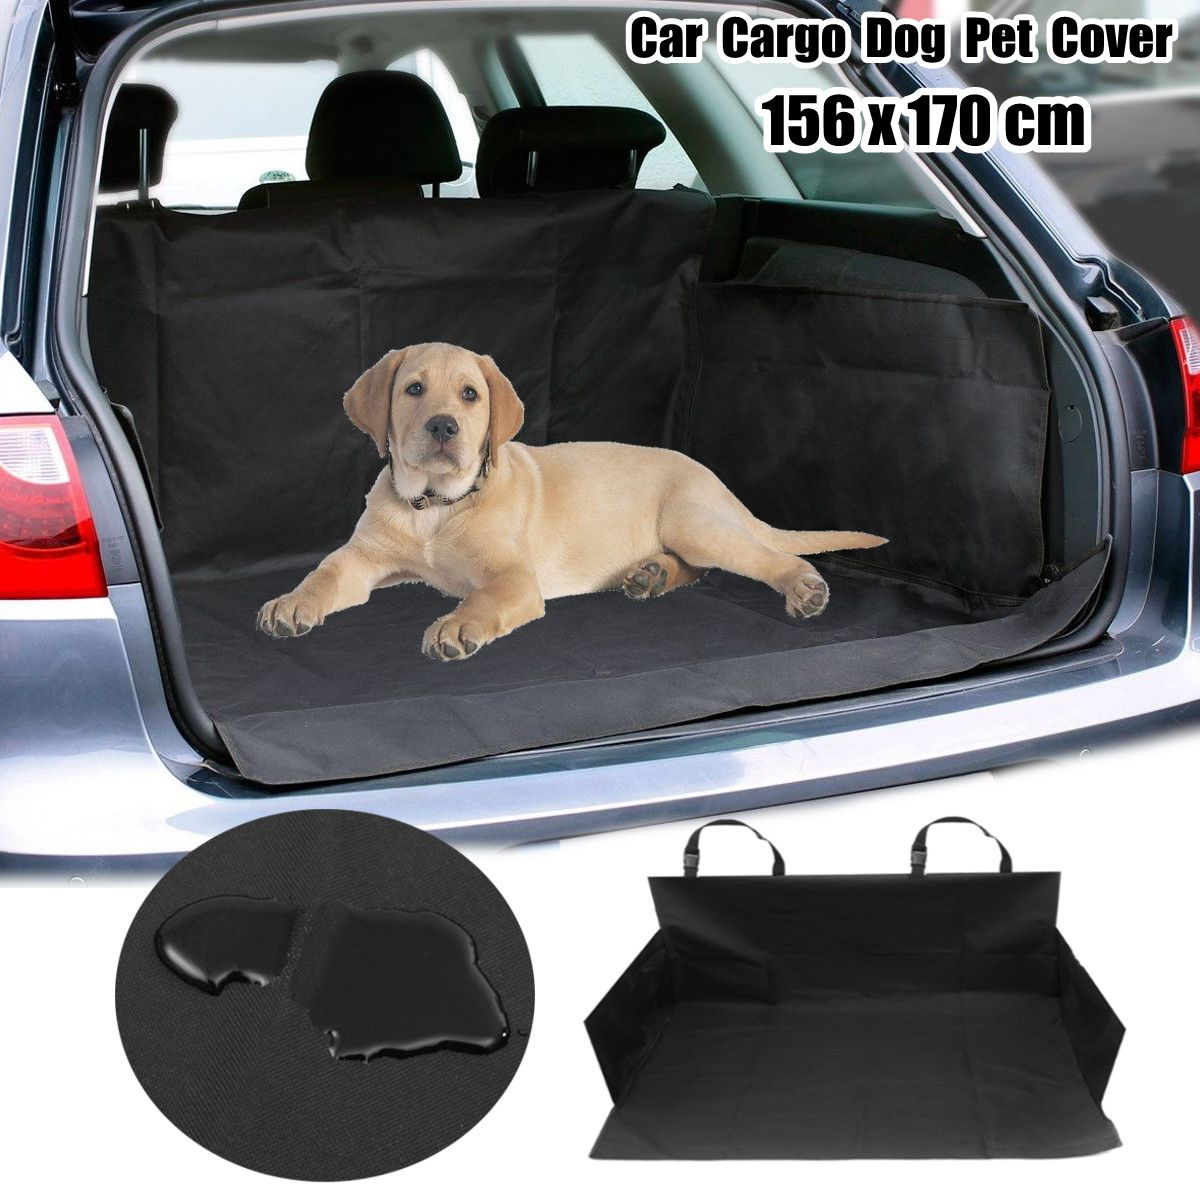 Car boot liner suitable for 5 door Chevrolet Lacetti 2003-2008 protective cover